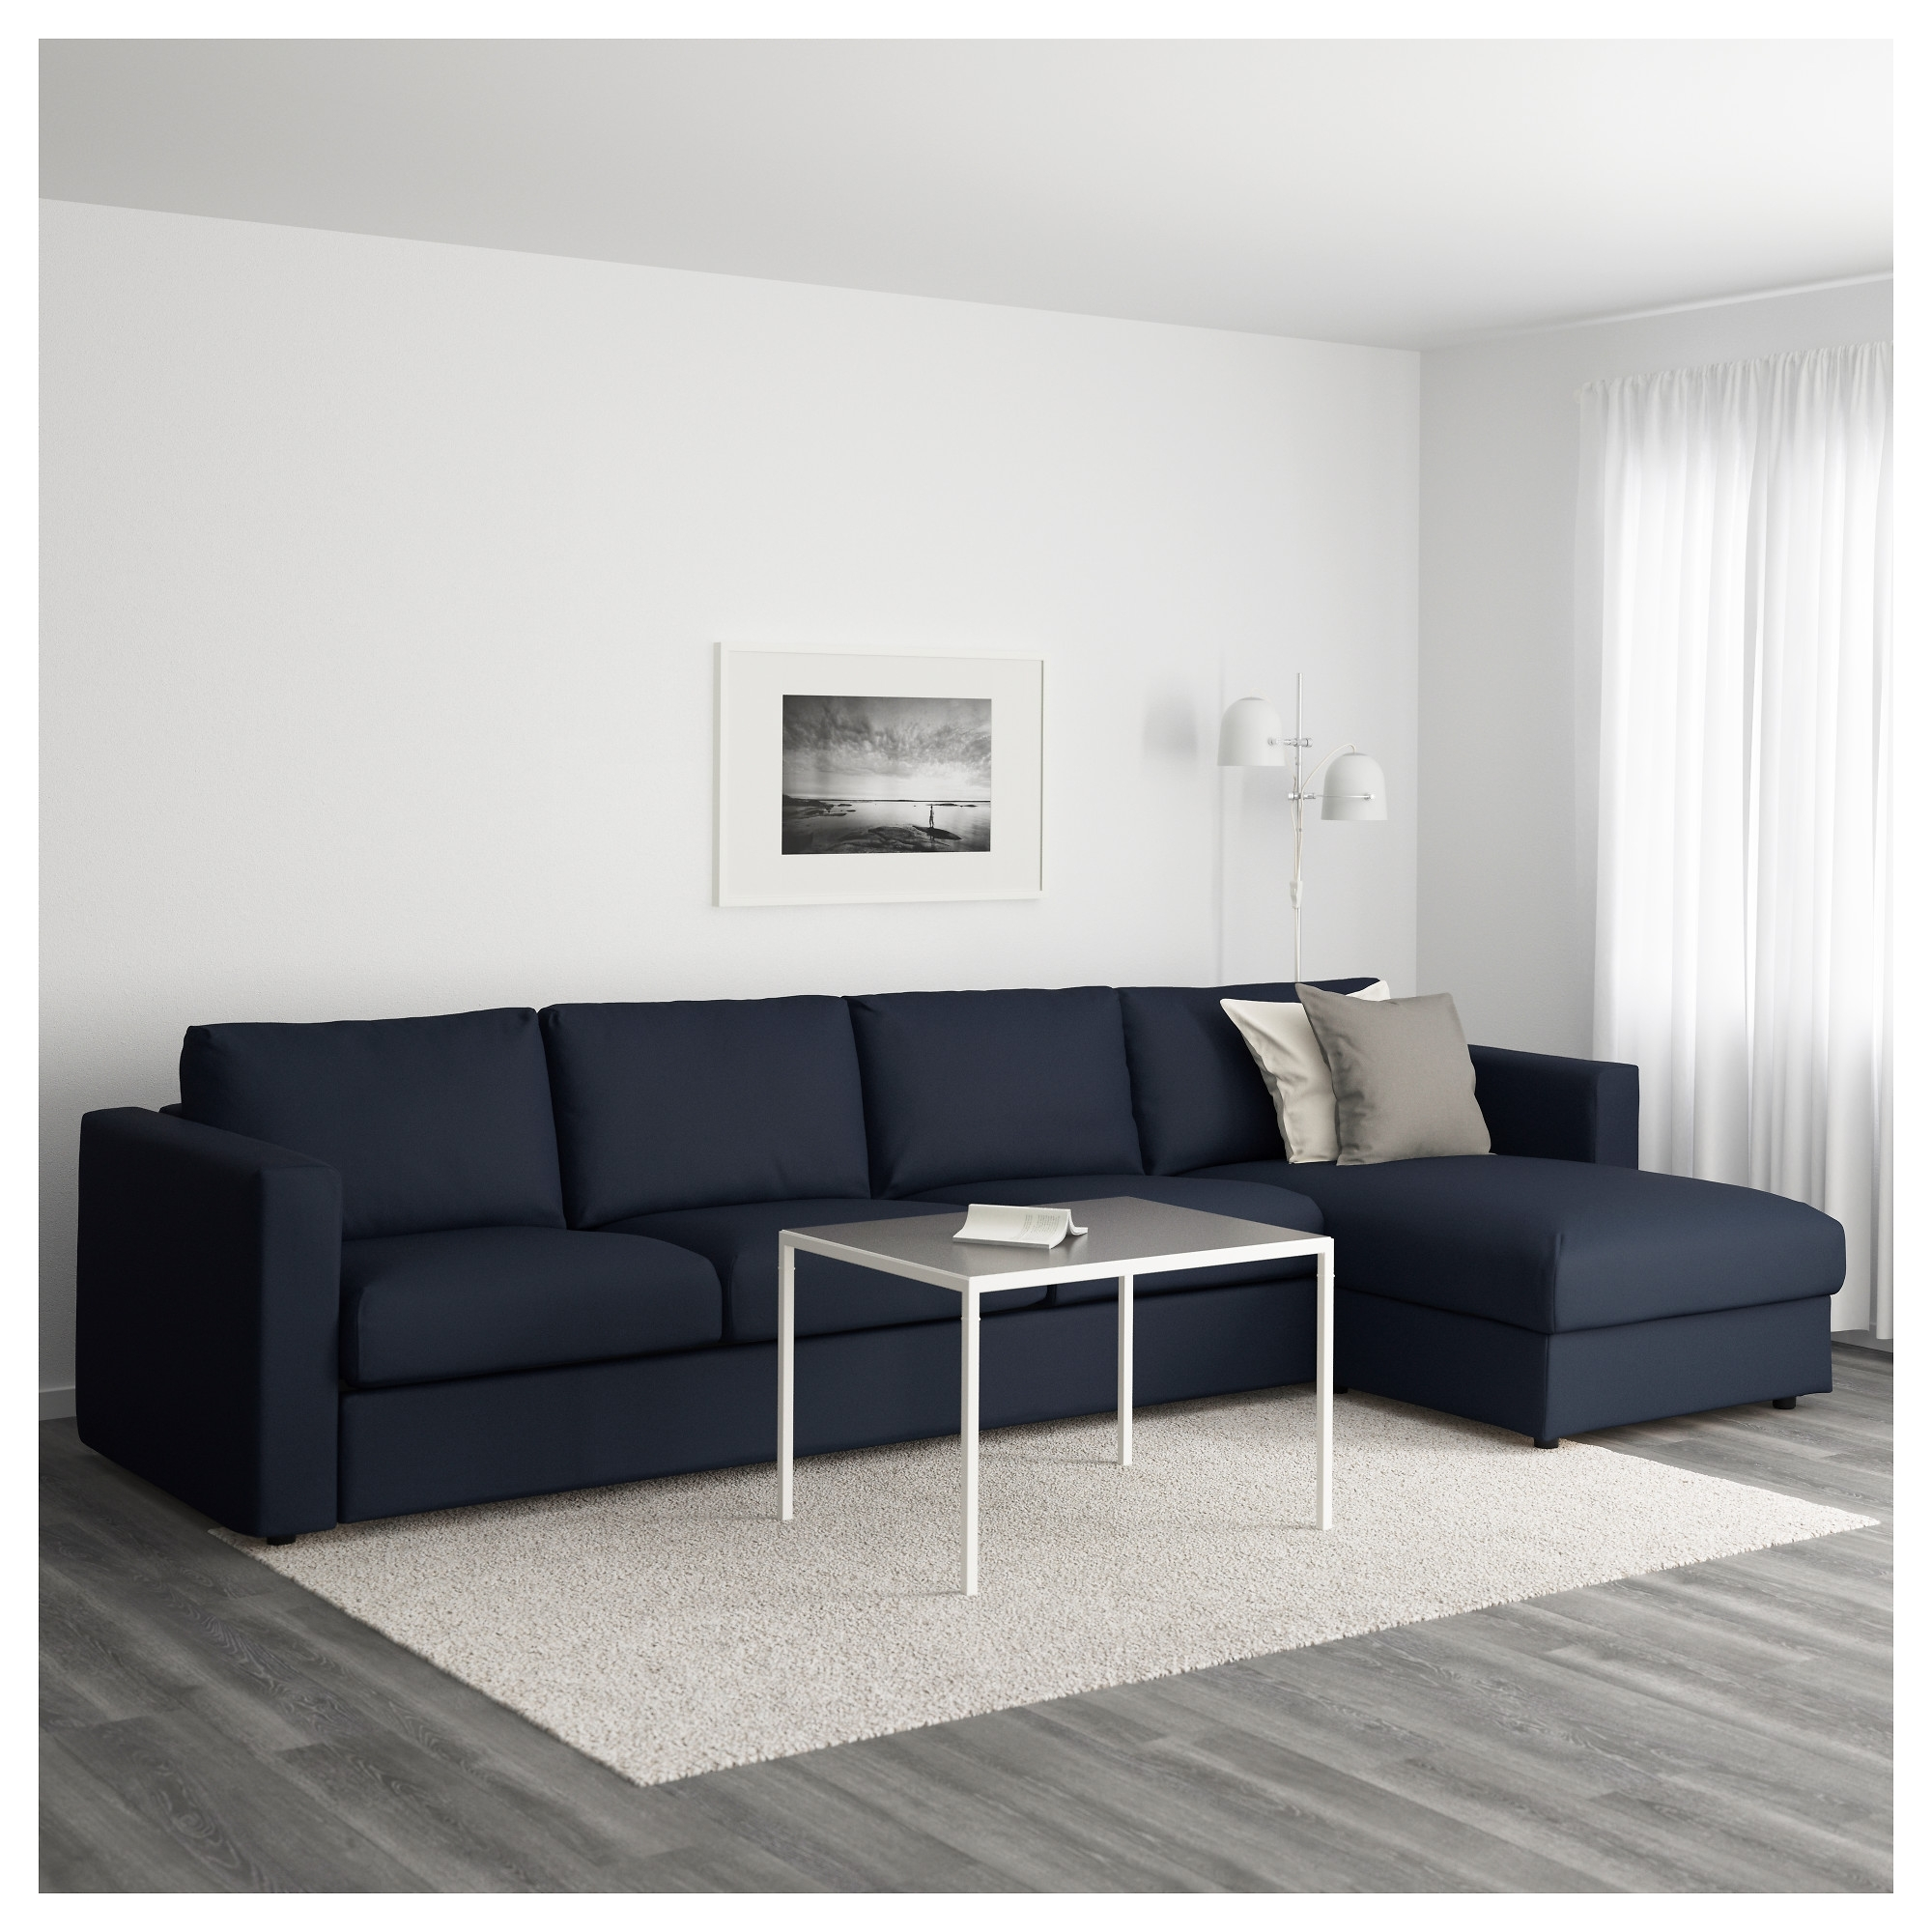 4 Seat Sofas For Recent Vimle 4 Seat Sofa With Chaise Longue/gräsbo Black Blue – Ikea (Gallery 5 of 20)